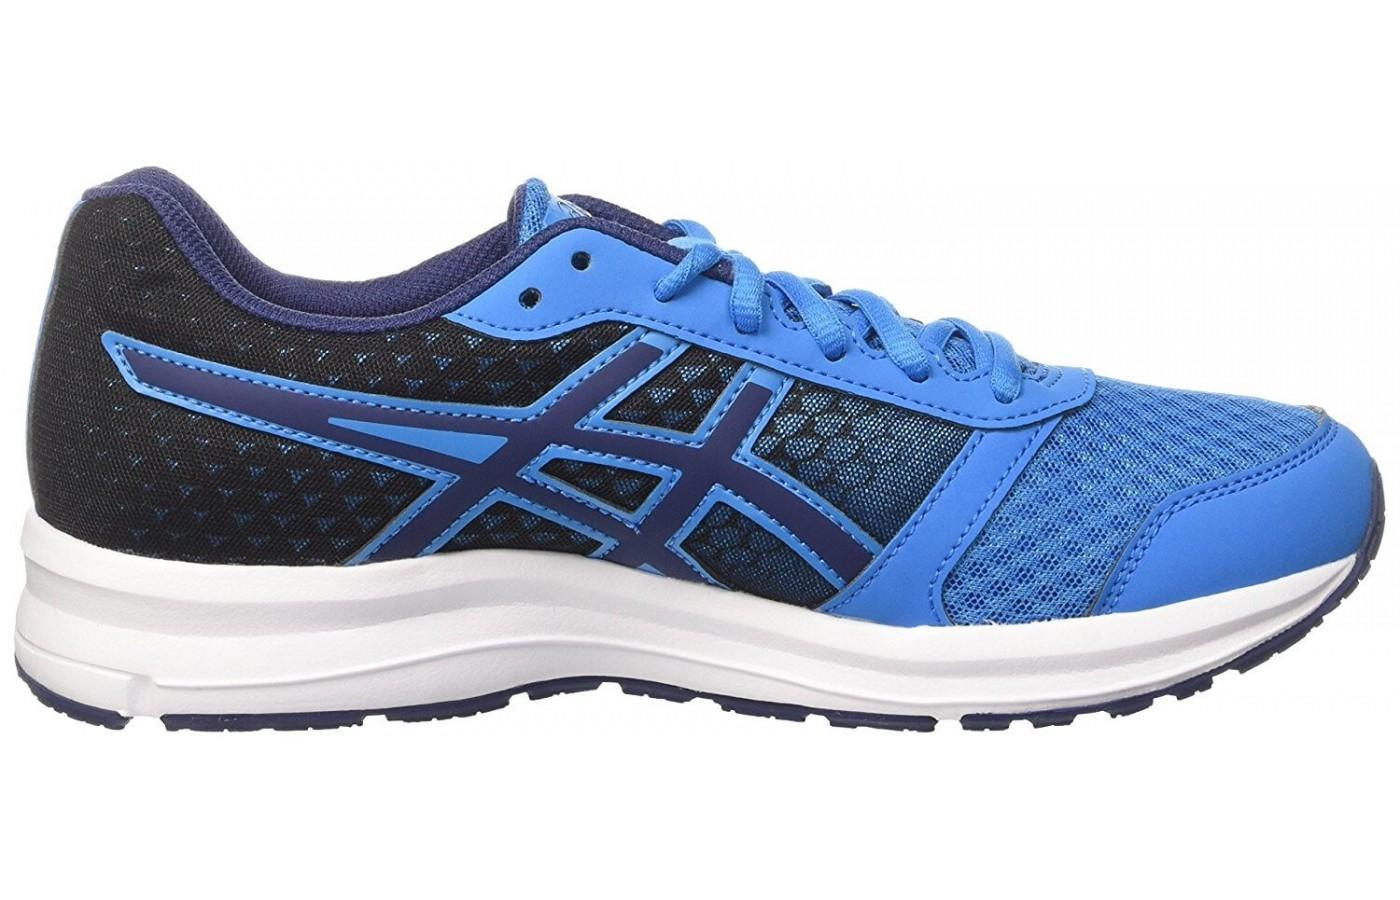 ae7d7d5eee0b ASICS Patriot 8 Reviewed - To Buy or Not in May 2019